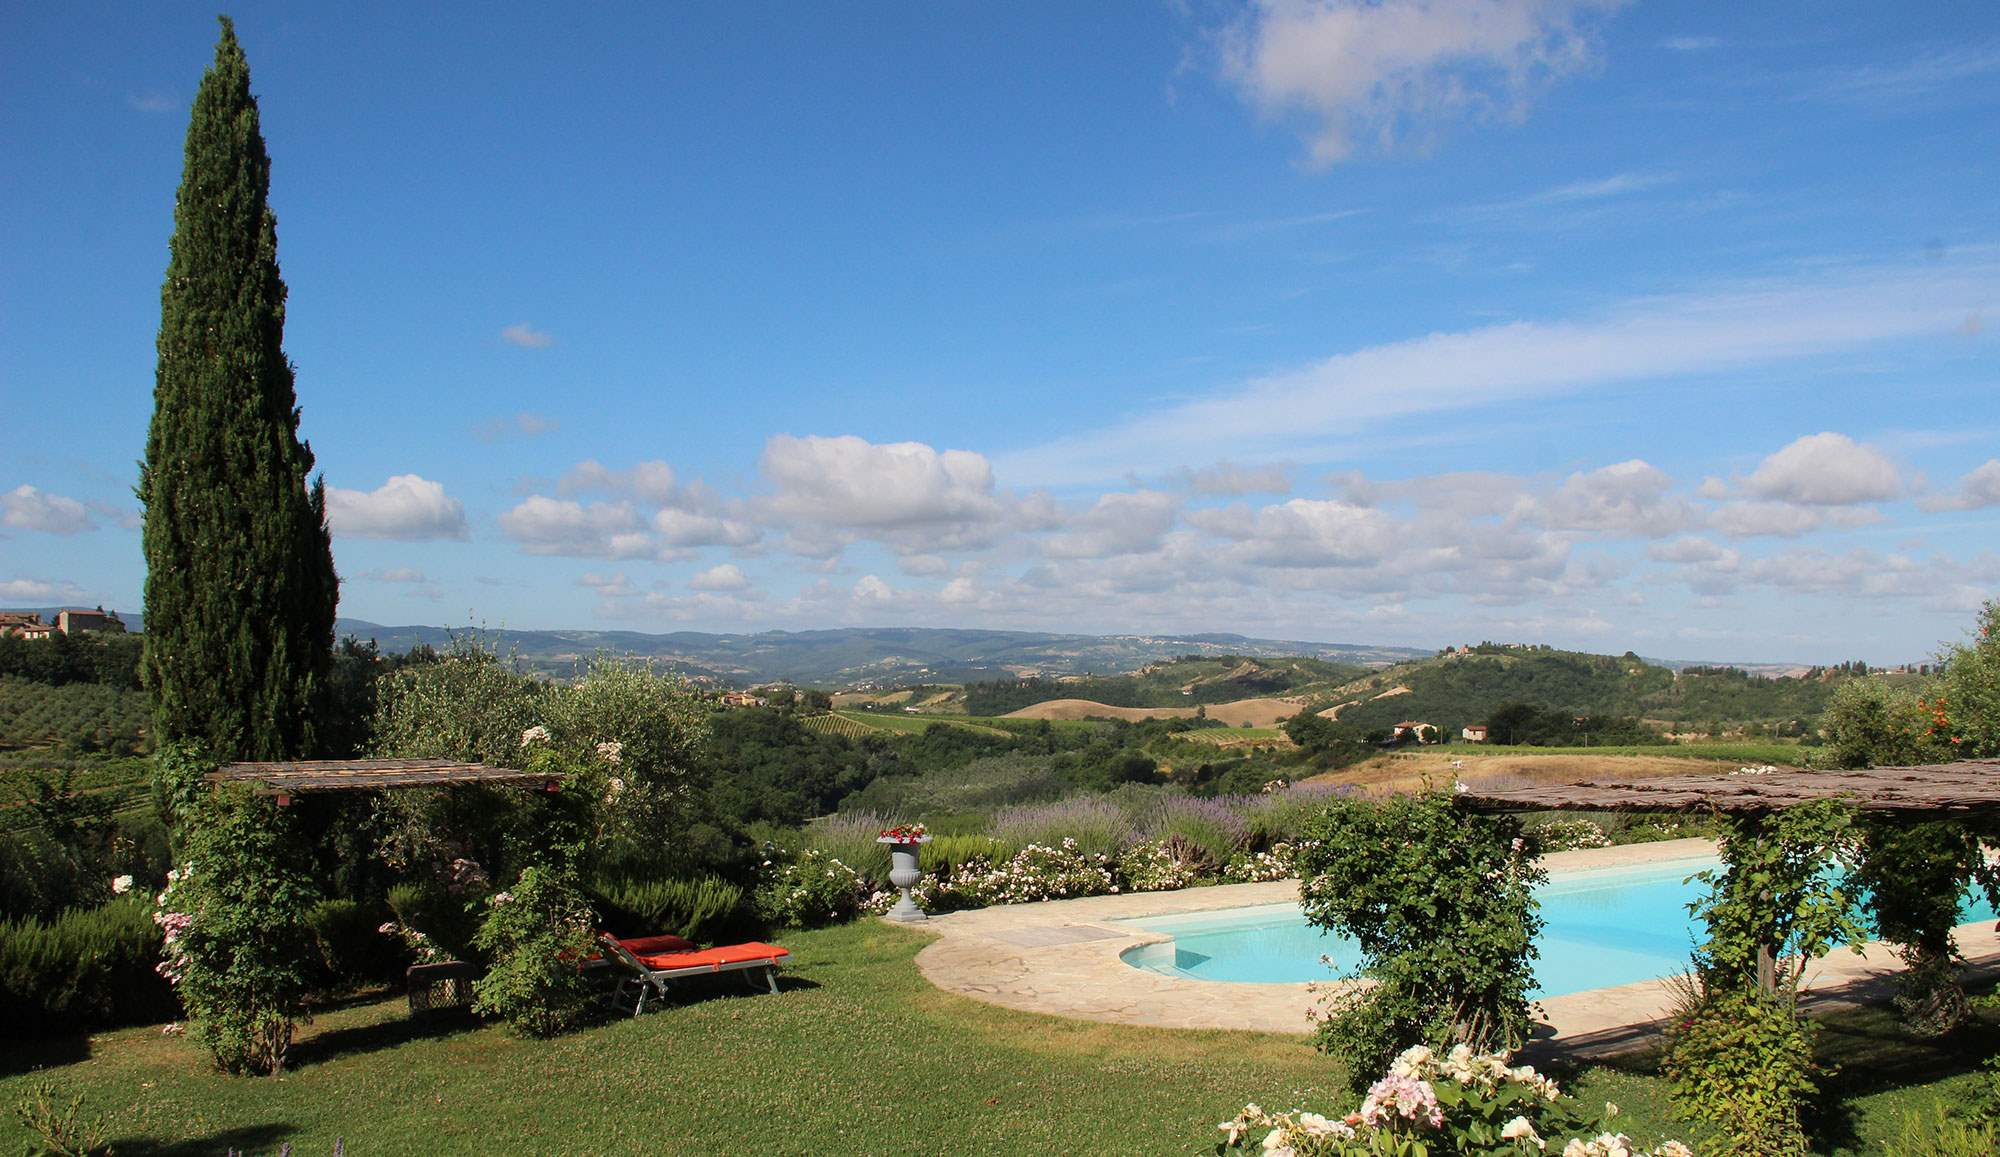 Villa Capanna, 3 bedroom villa in Chianti & Countryside, Tuscany Photo #1